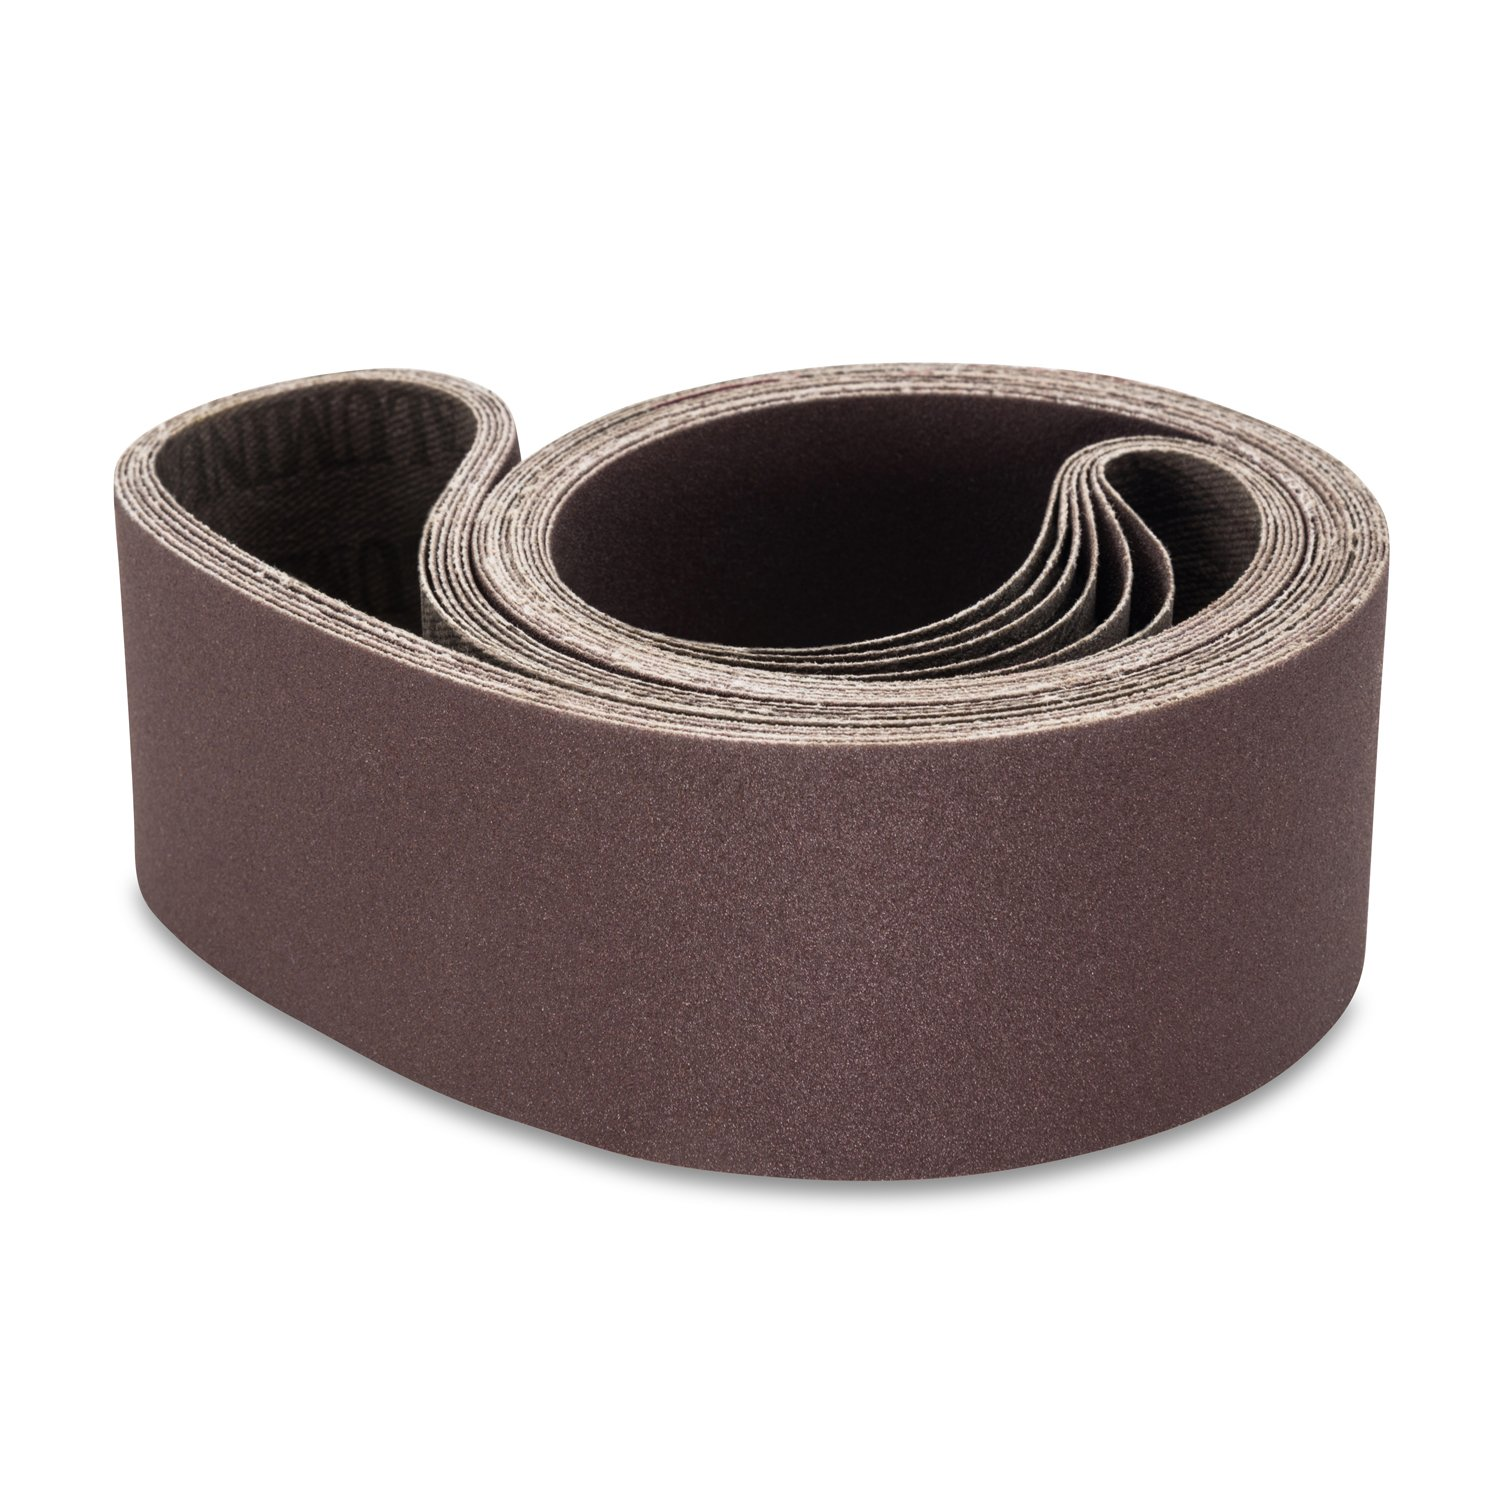 2 X 48 Inch 80 Grit Aluminum Oxide Metal Sanding Belts, 6 Pack by Red Label Abrasives